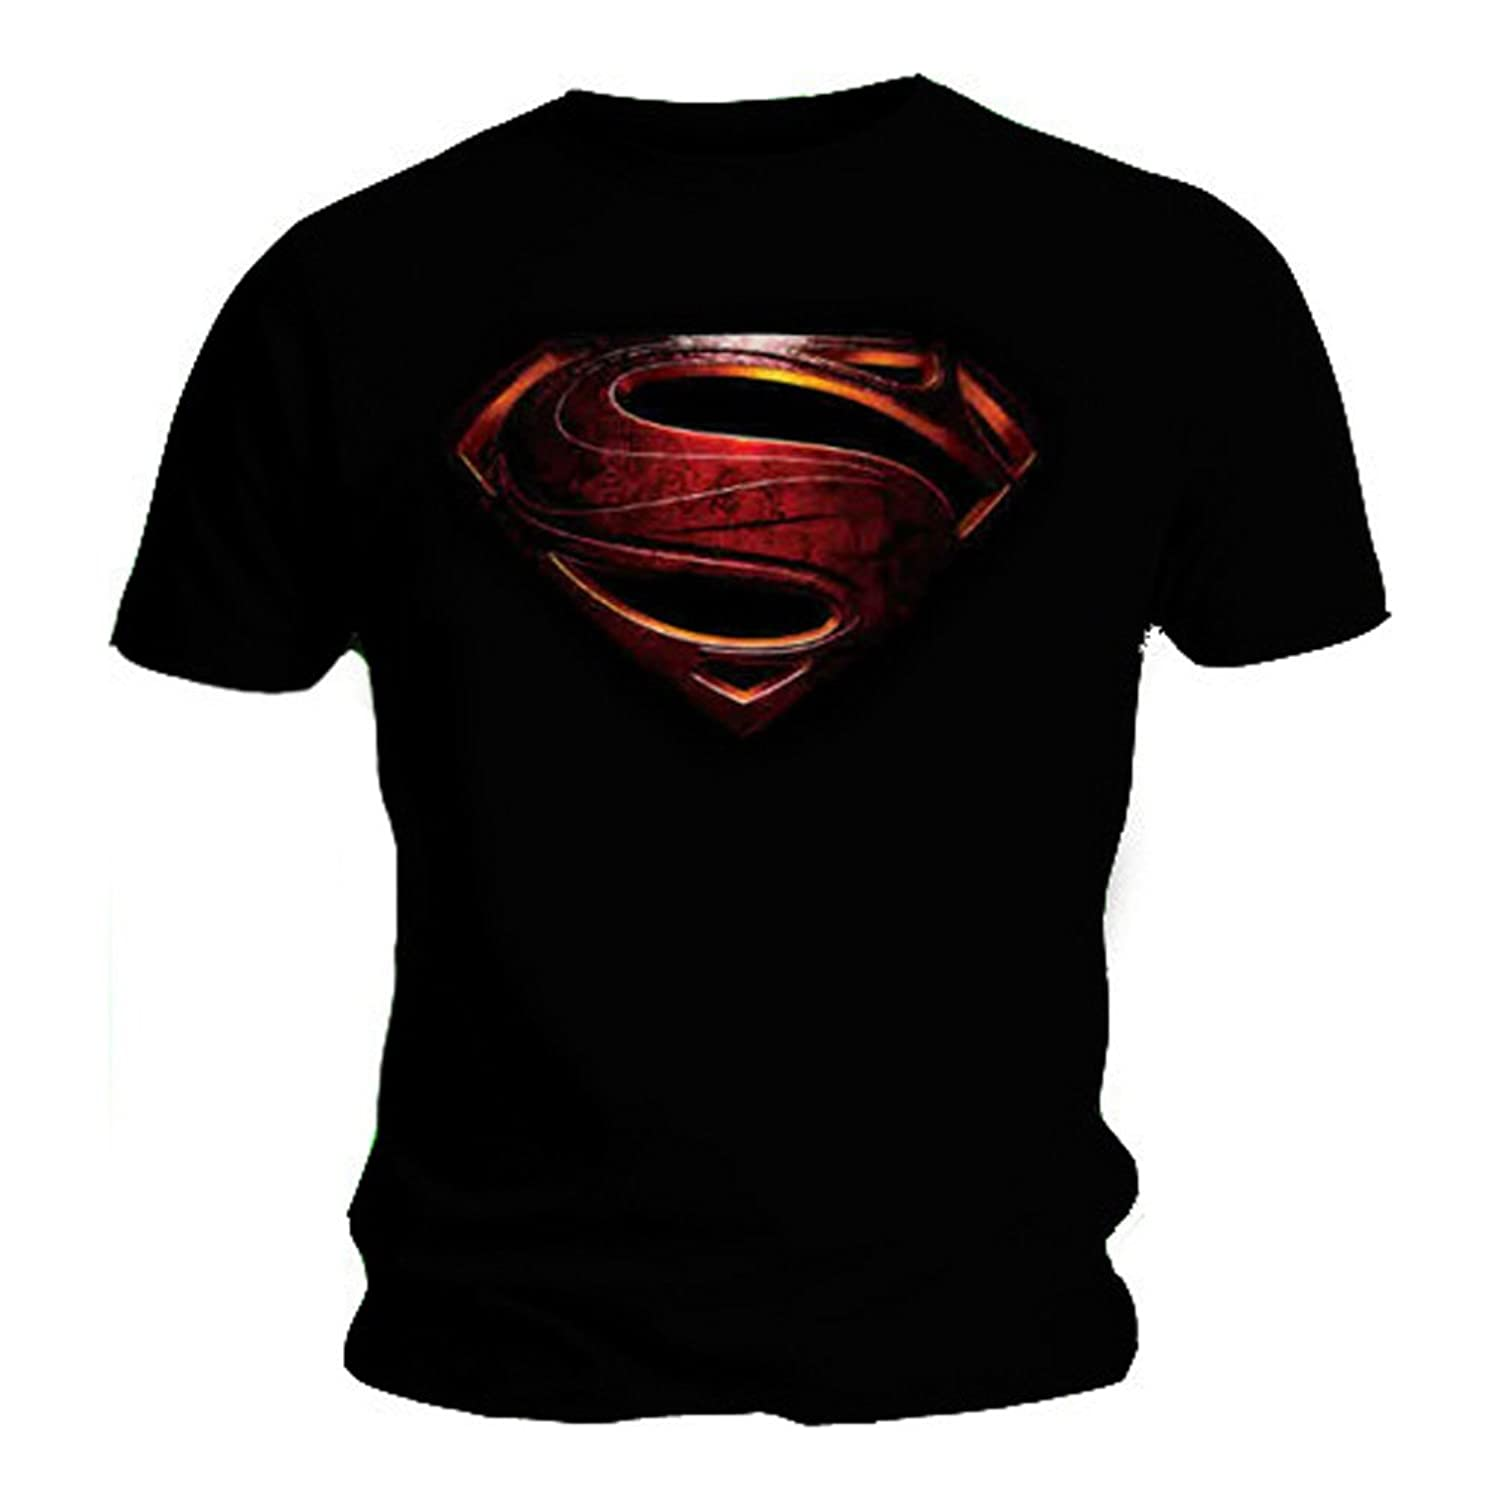 Black flag t shirt uk - Official T Shirt Superman Logo Man Of Steel Movie All Sizes